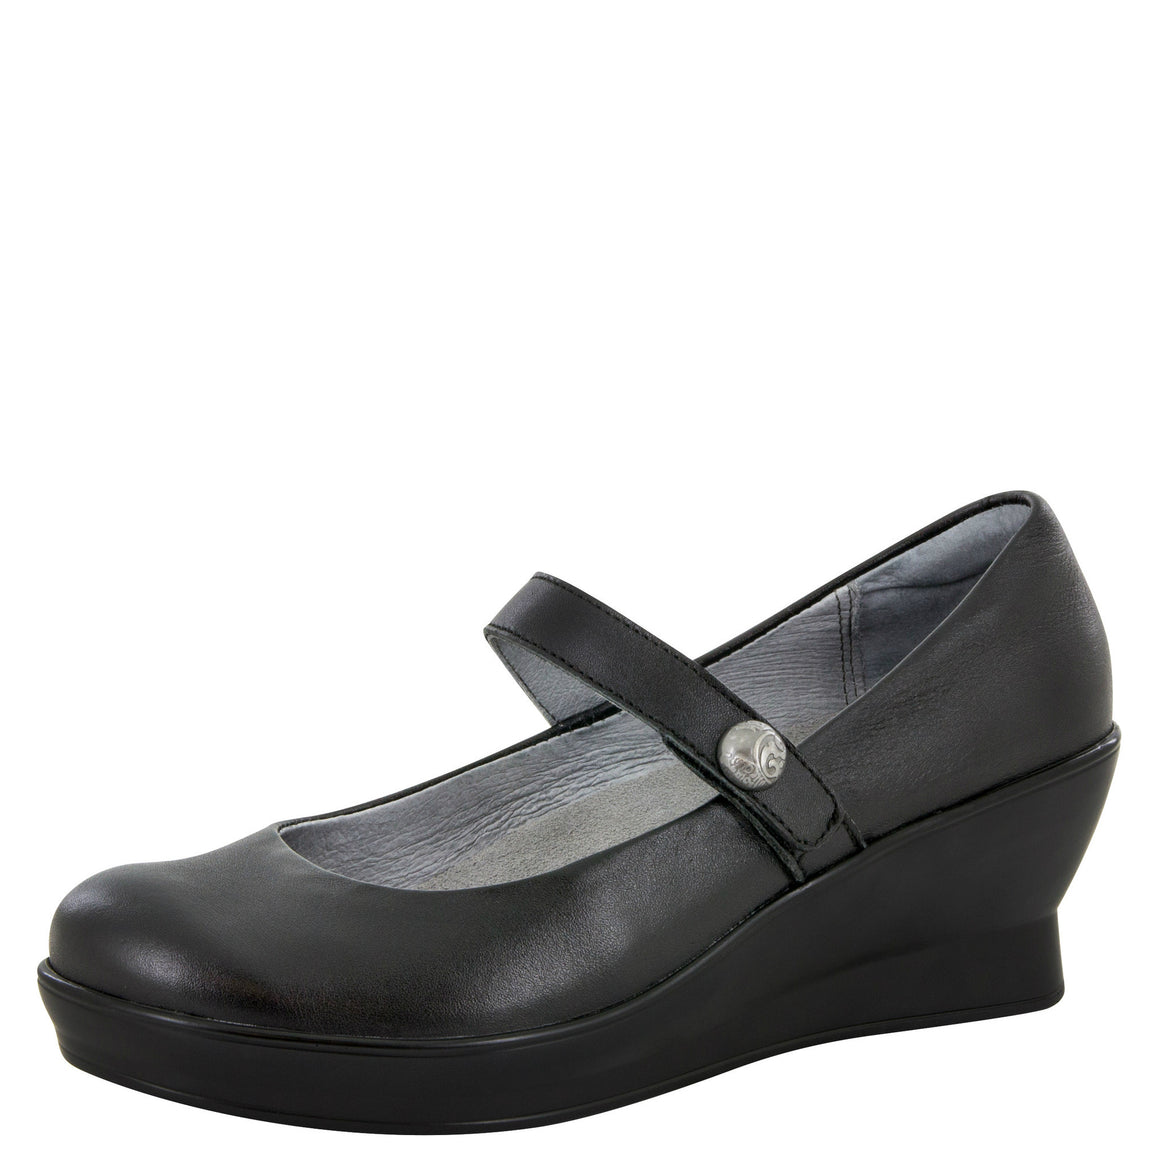 Alegria Women's Flair Mary Jane Wedge - Black FLA-601